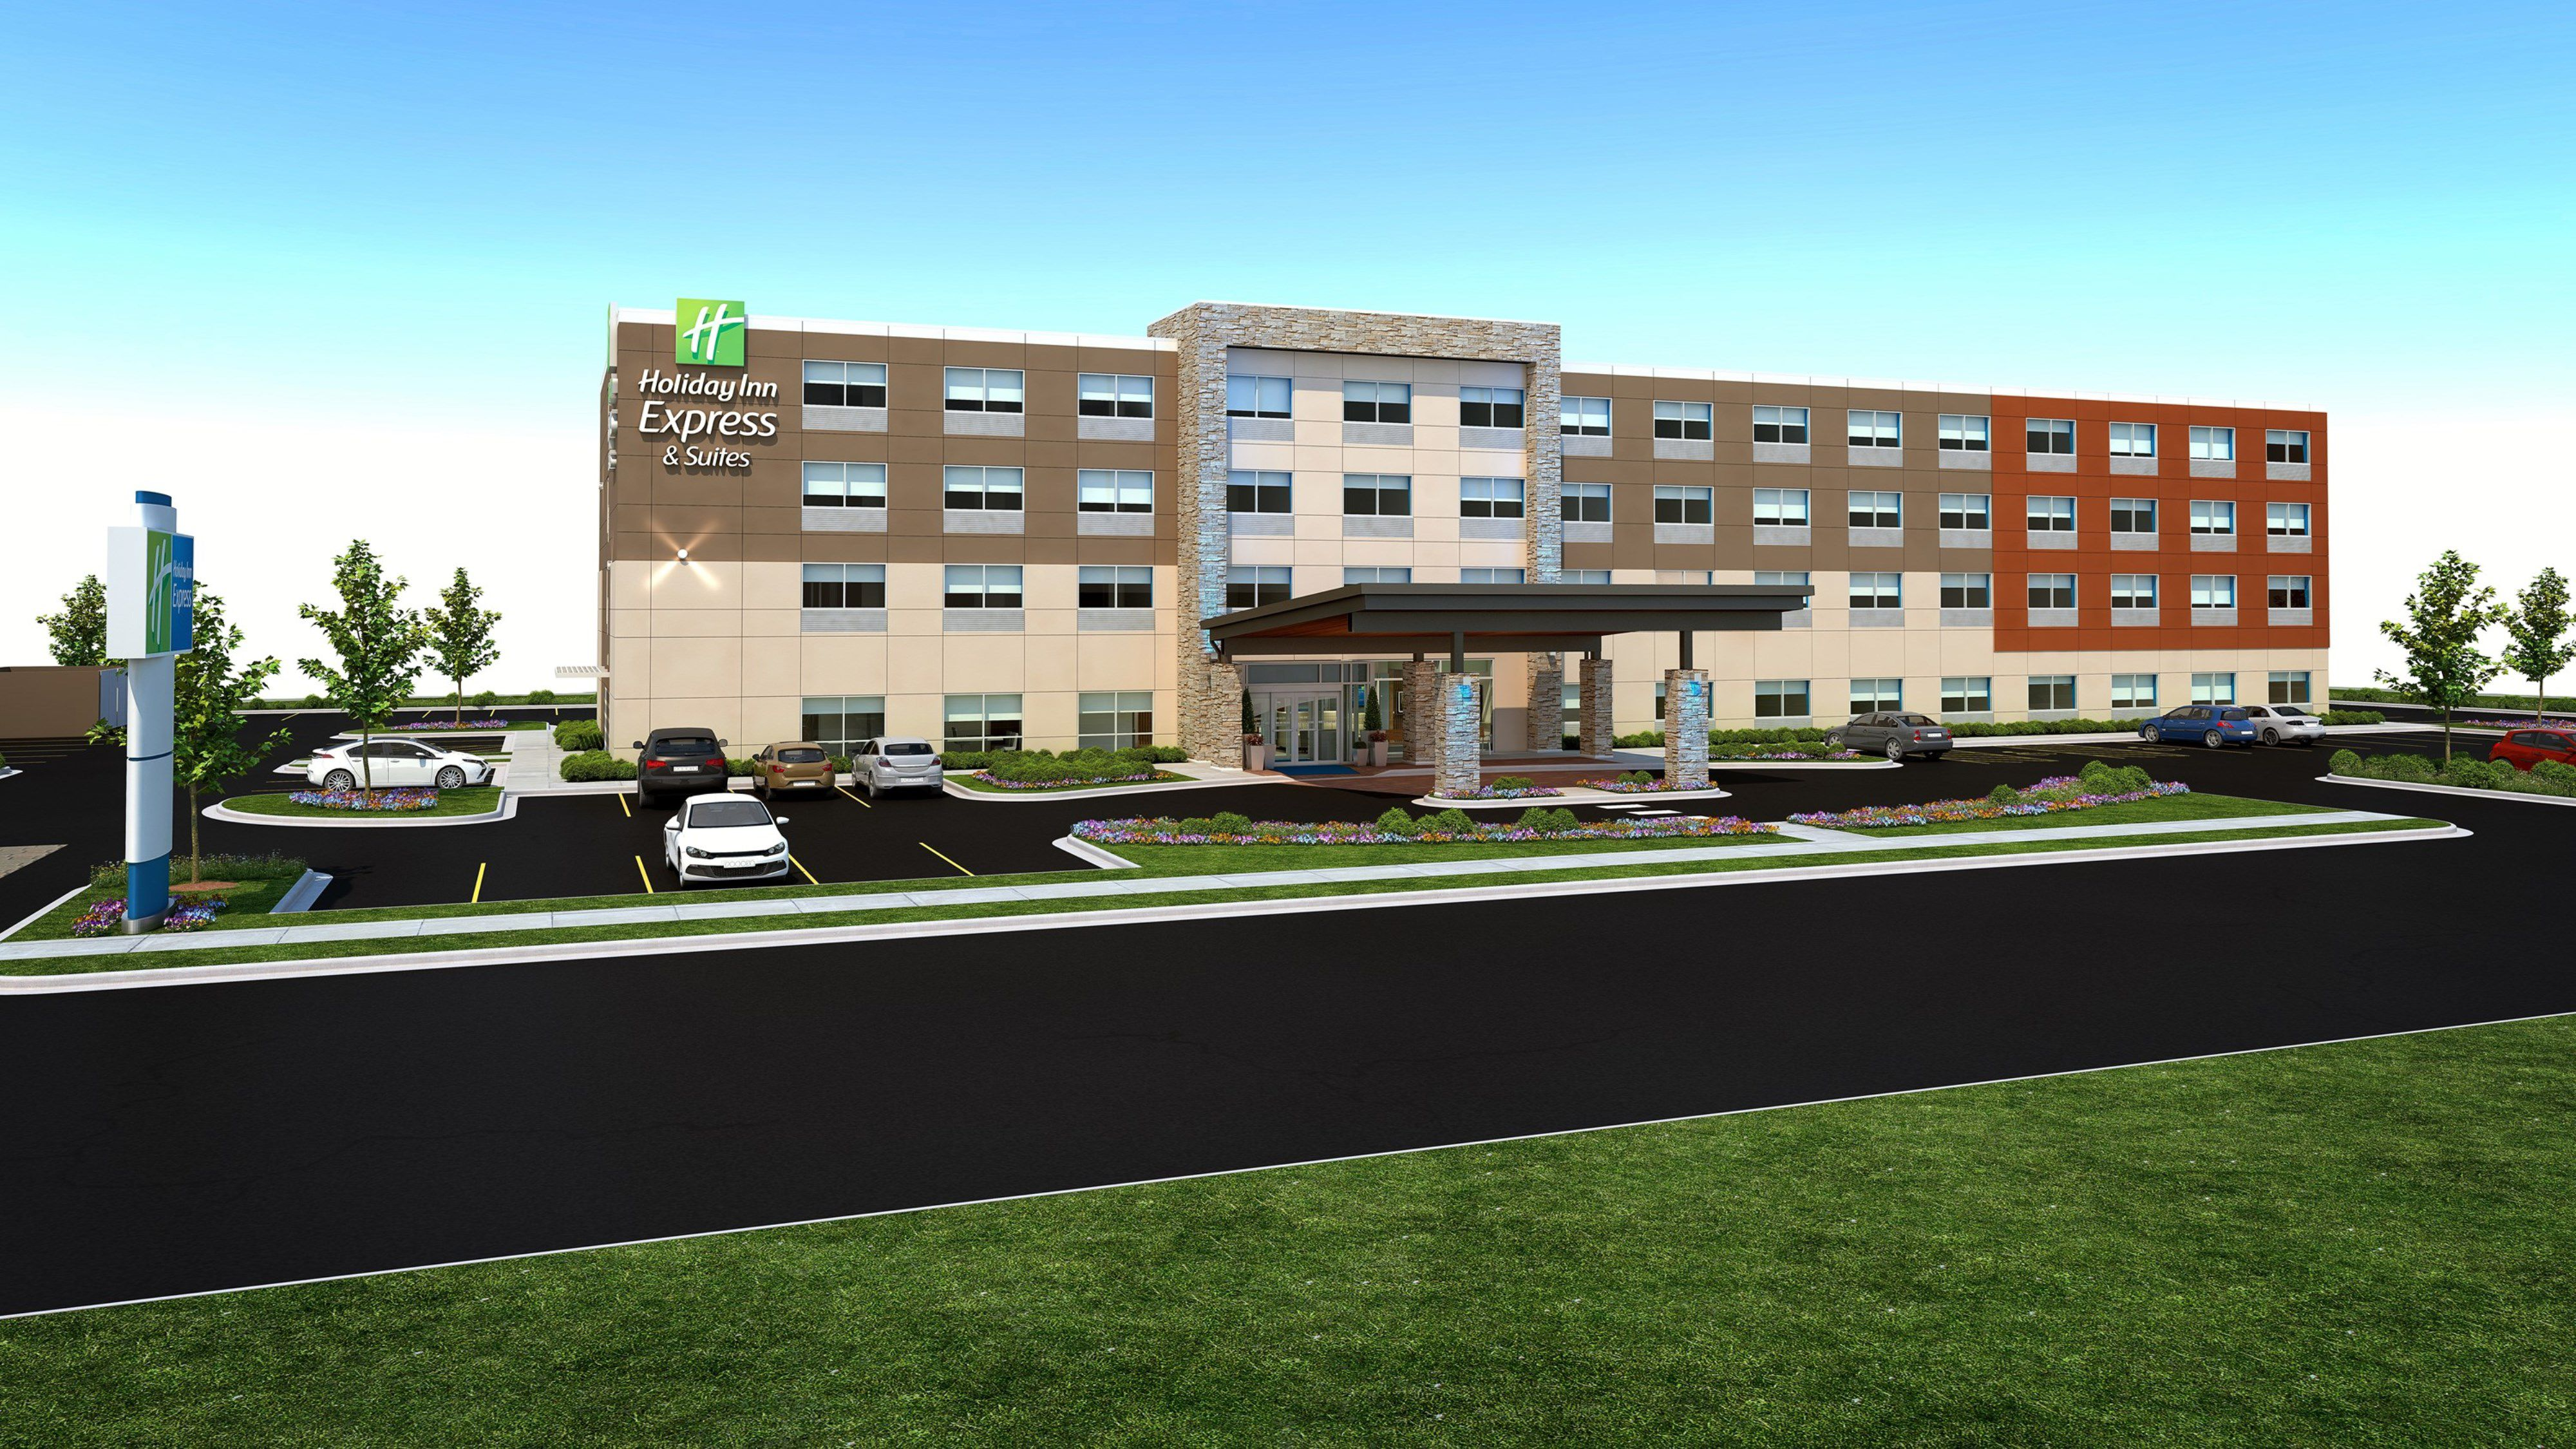 Holiday Inn Express & Suites Carrollton West image 1